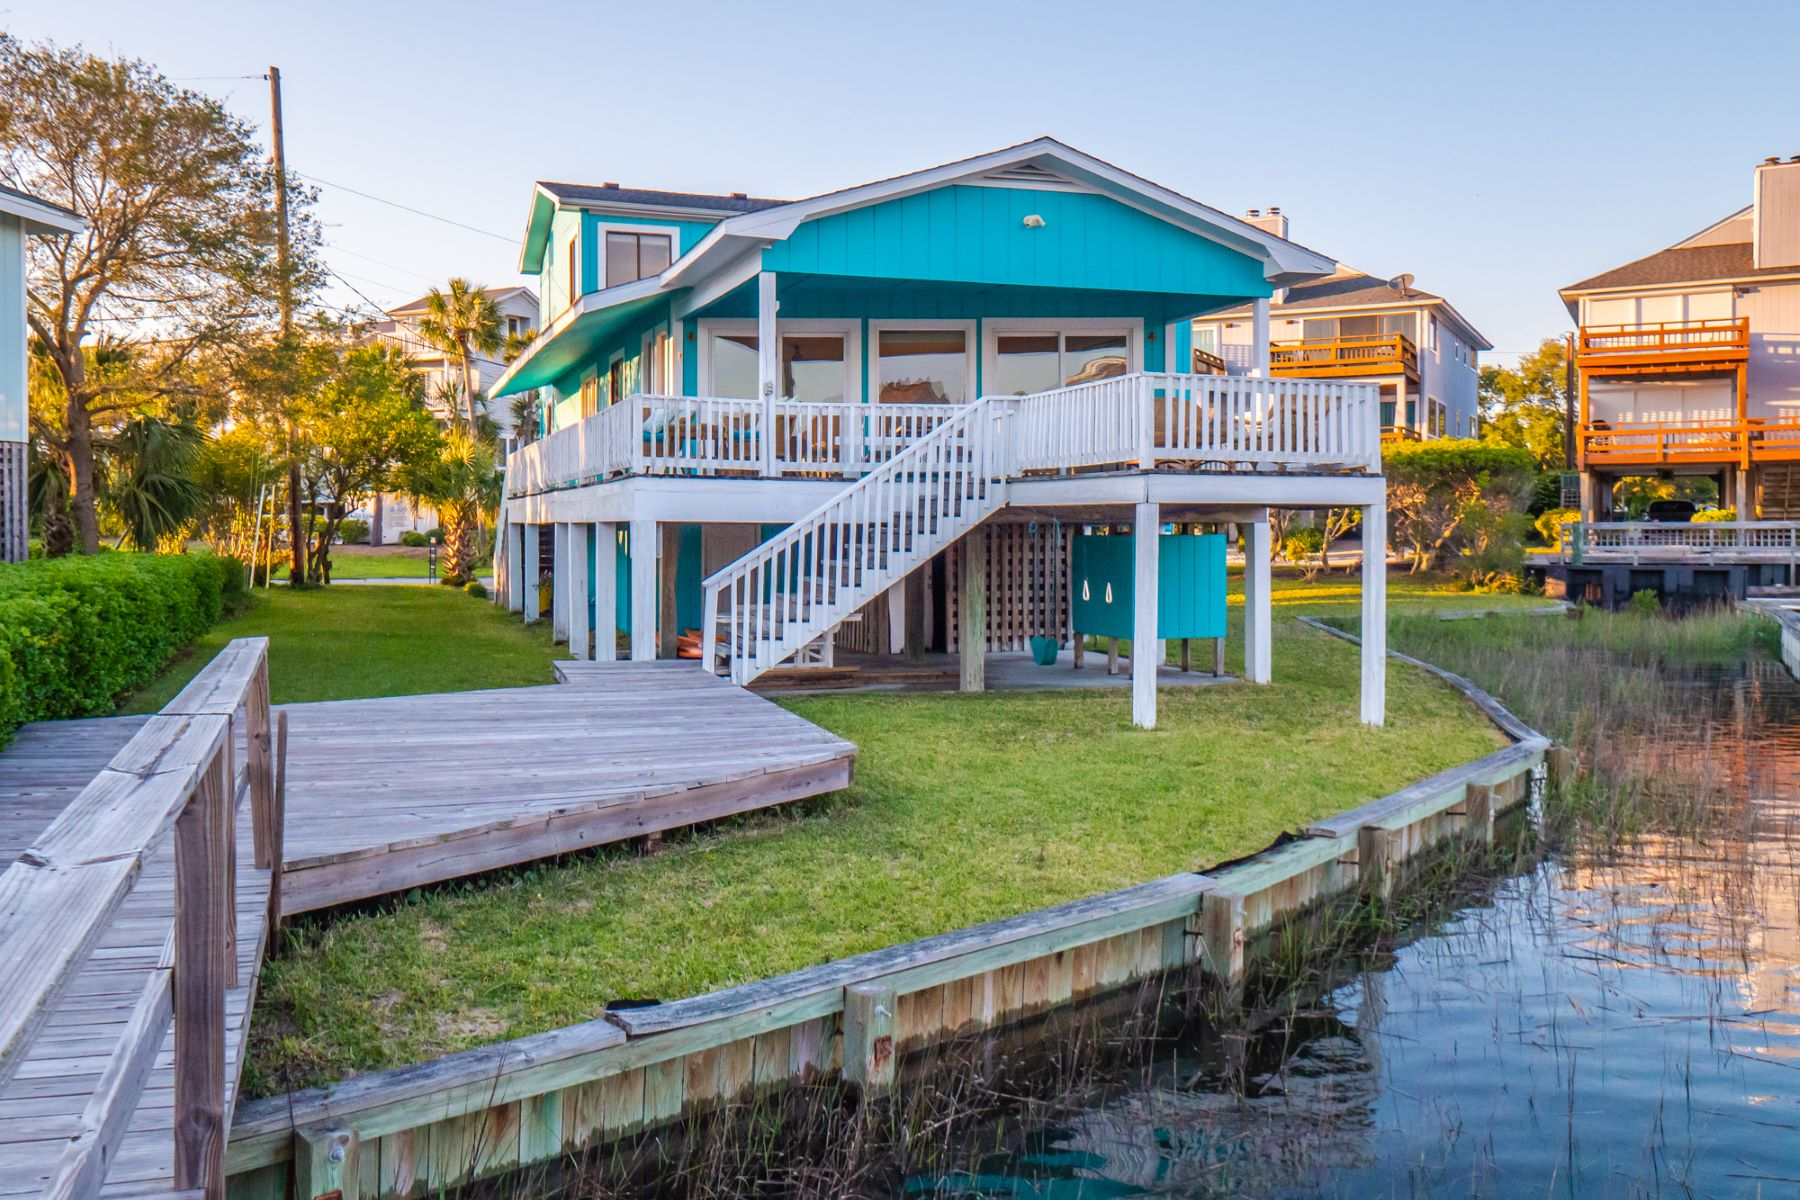 Single Family Homes for Sale at Beautiful Home on Wrightsville Beach 234 Seacrest Drive Wrightsville Beach, North Carolina 28480 United States